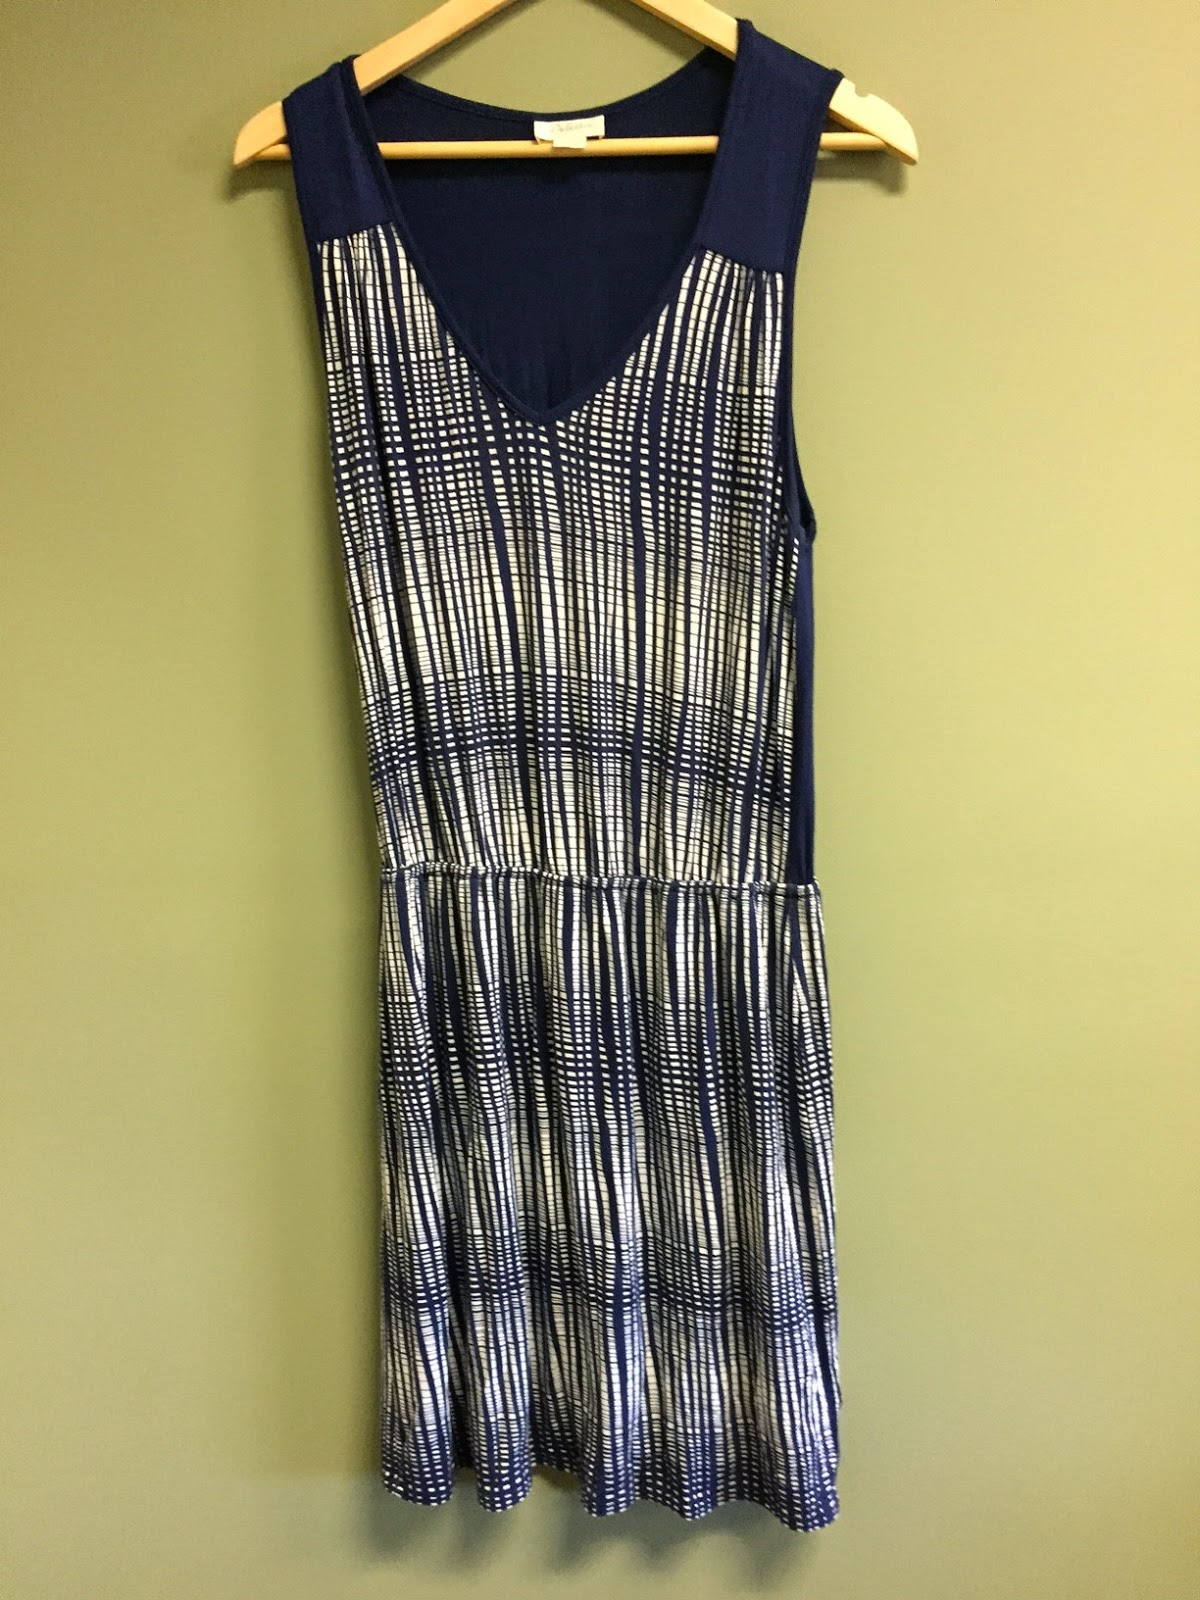 065f24c9614e  SOLD Anthropologie Janie Jersey Dress Size M -  30 shipped